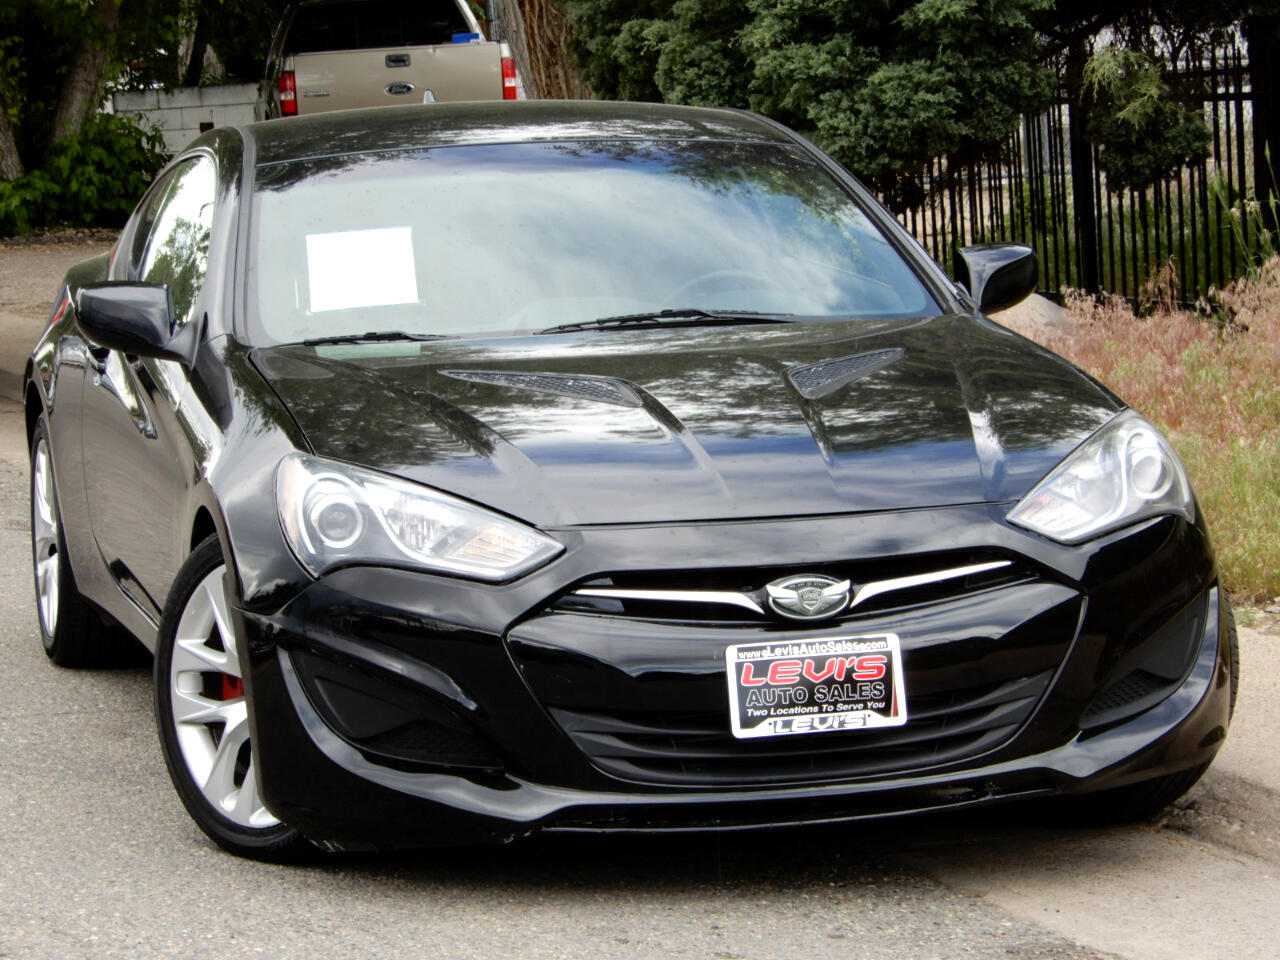 2013 Hyundai Genesis Coupe 2.0 Turbo